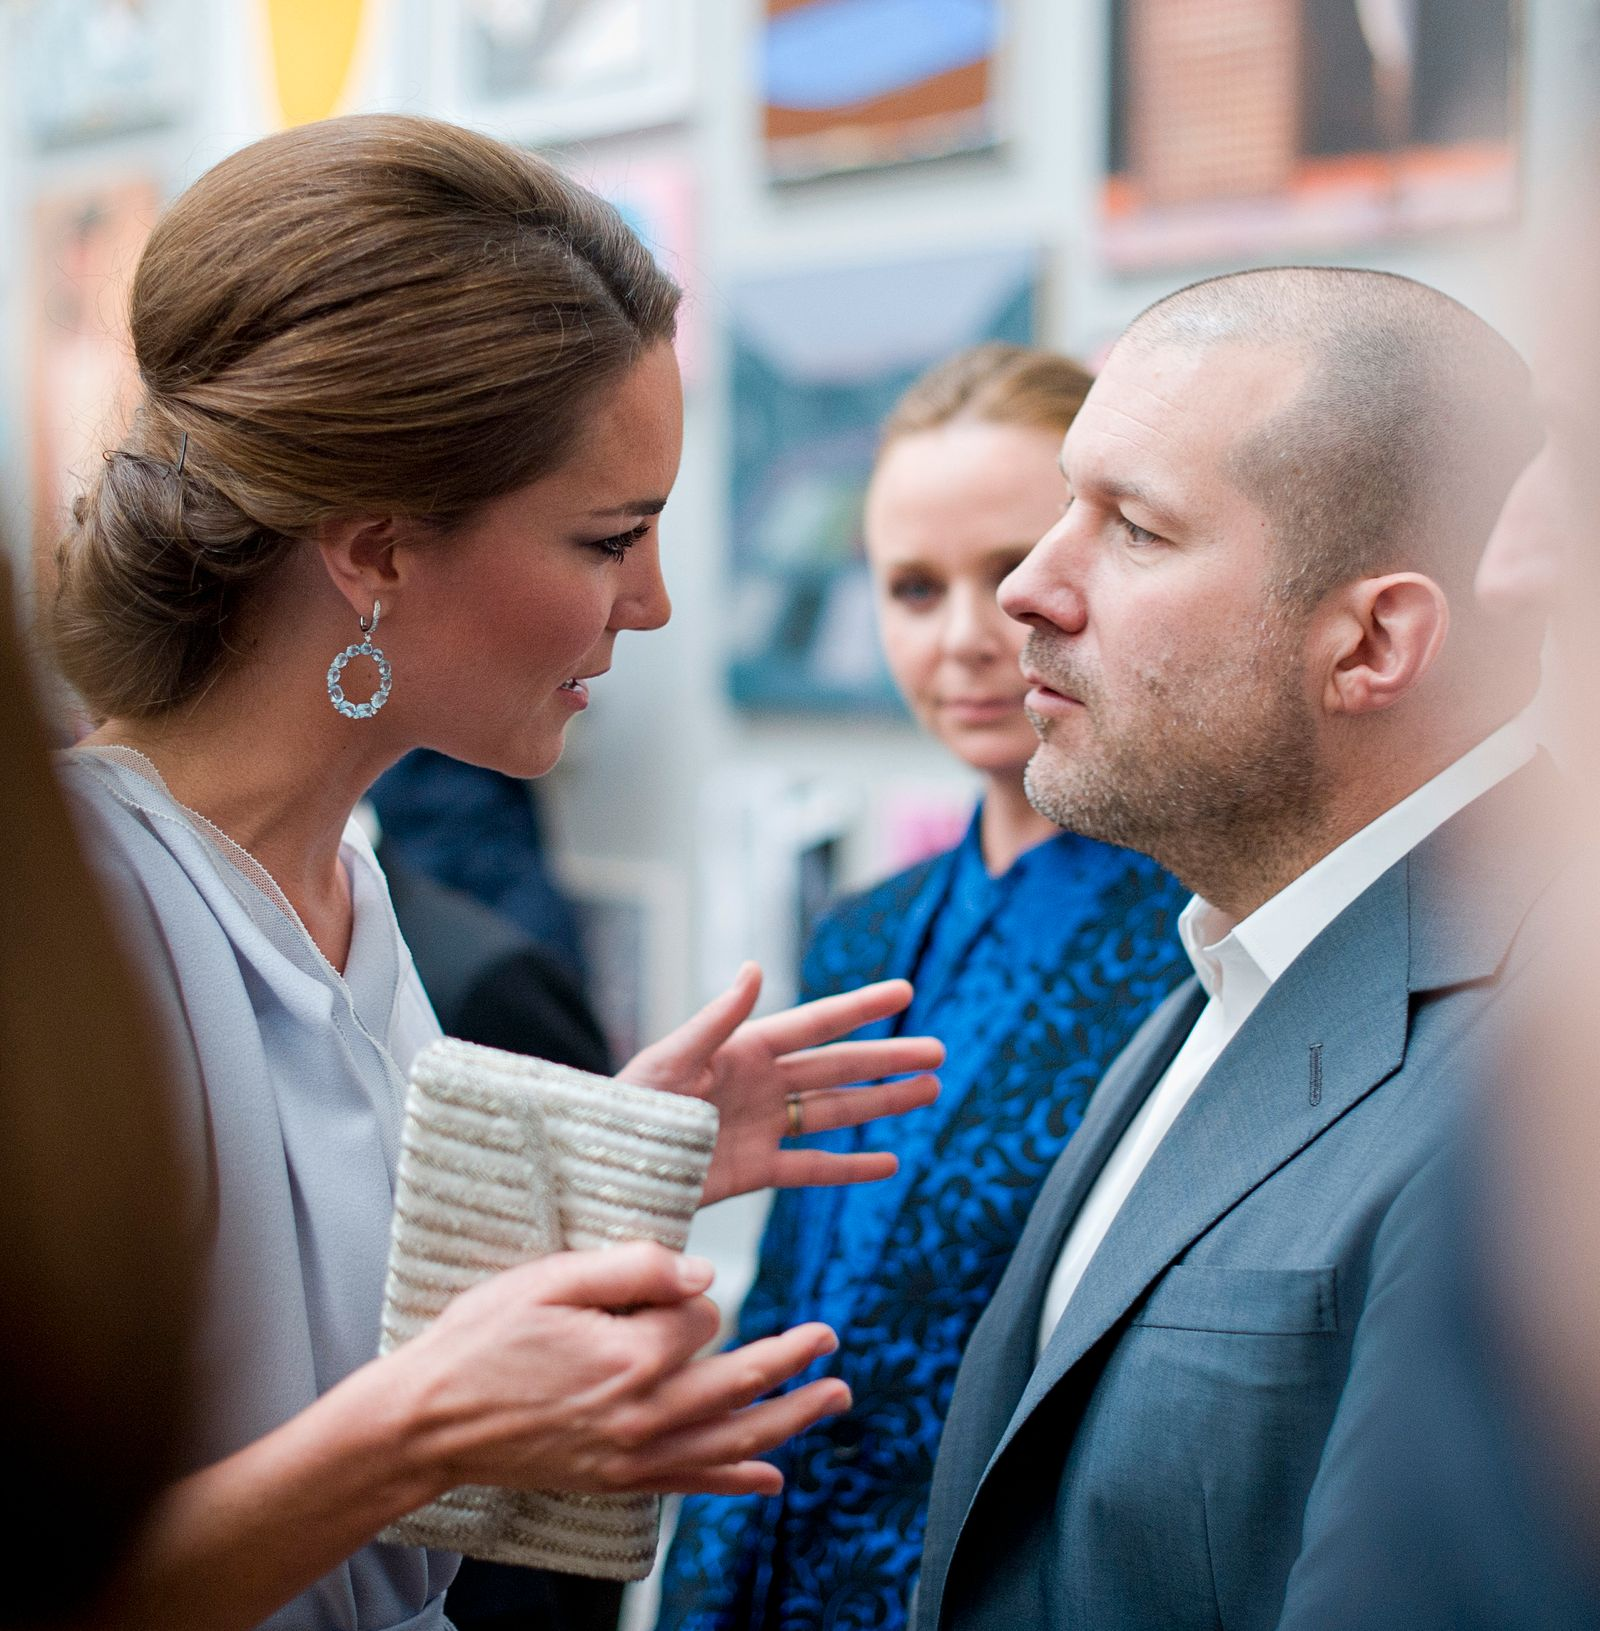 The Duchess Of Cambridge Attends The UK's Creative Industries Reception At The Royal Academy Of Arts